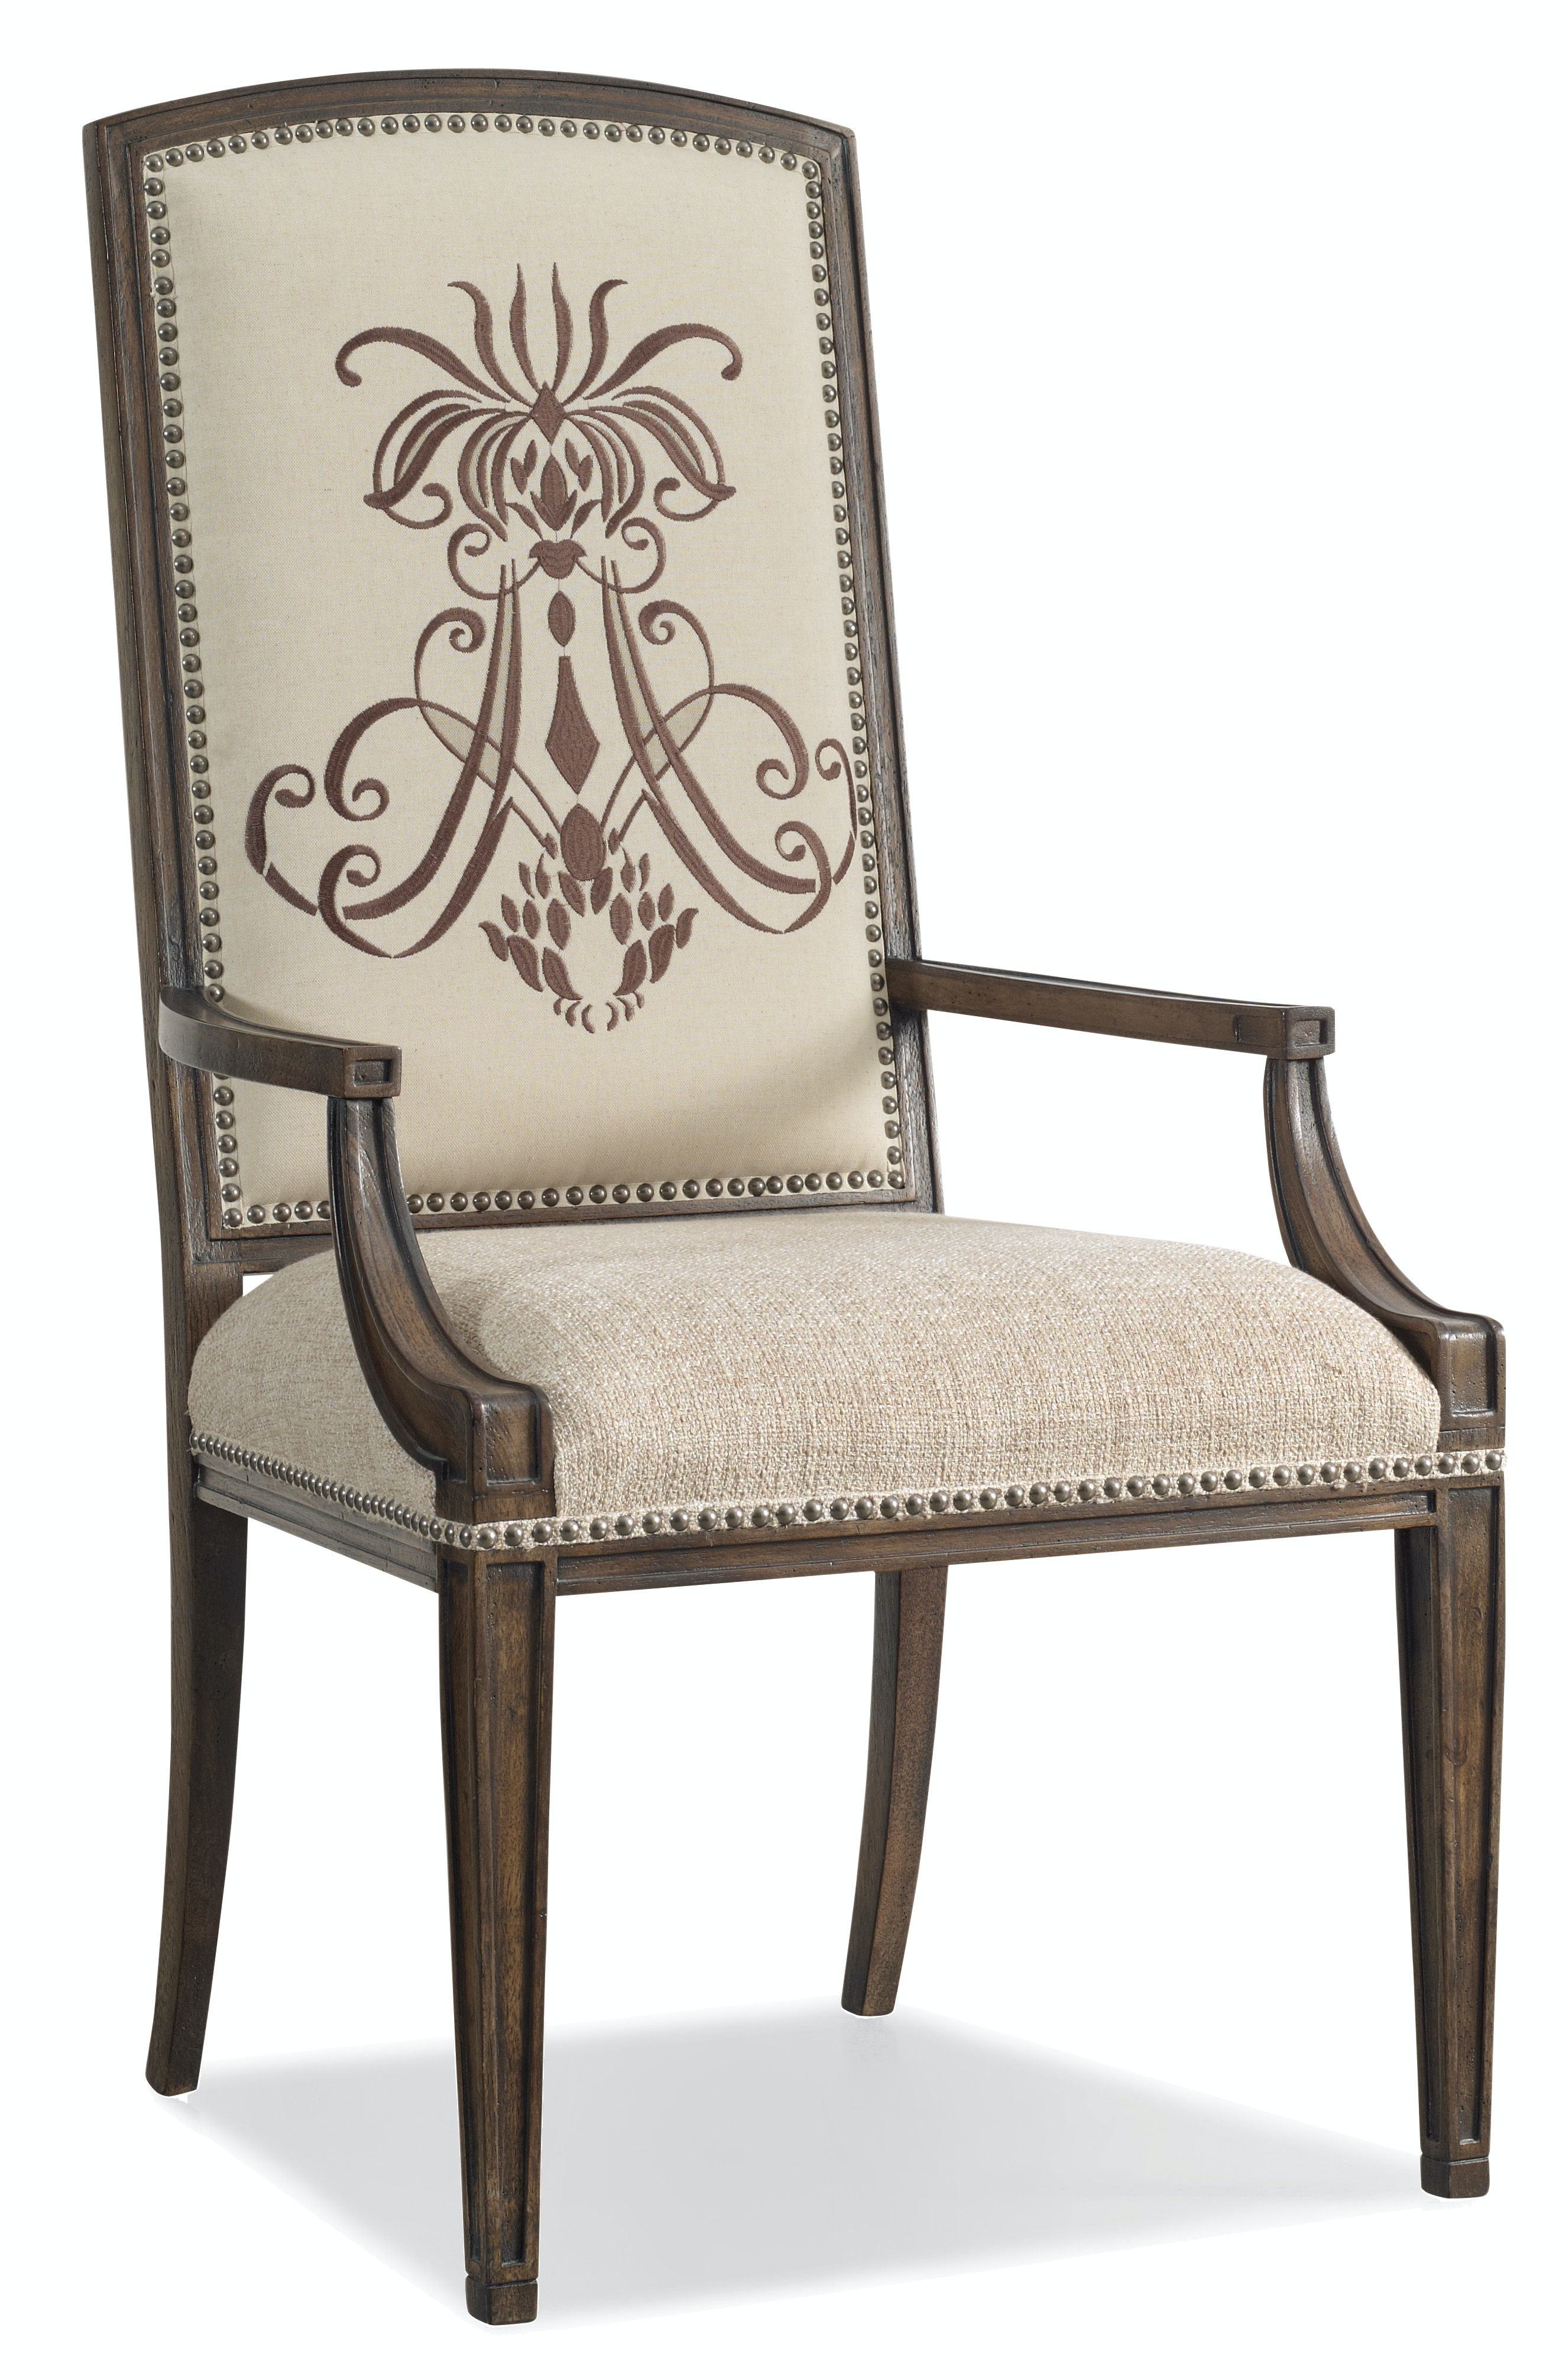 Hooker Furniture Dining Room Rhapsody Insignia Arm Chair 5070-75400